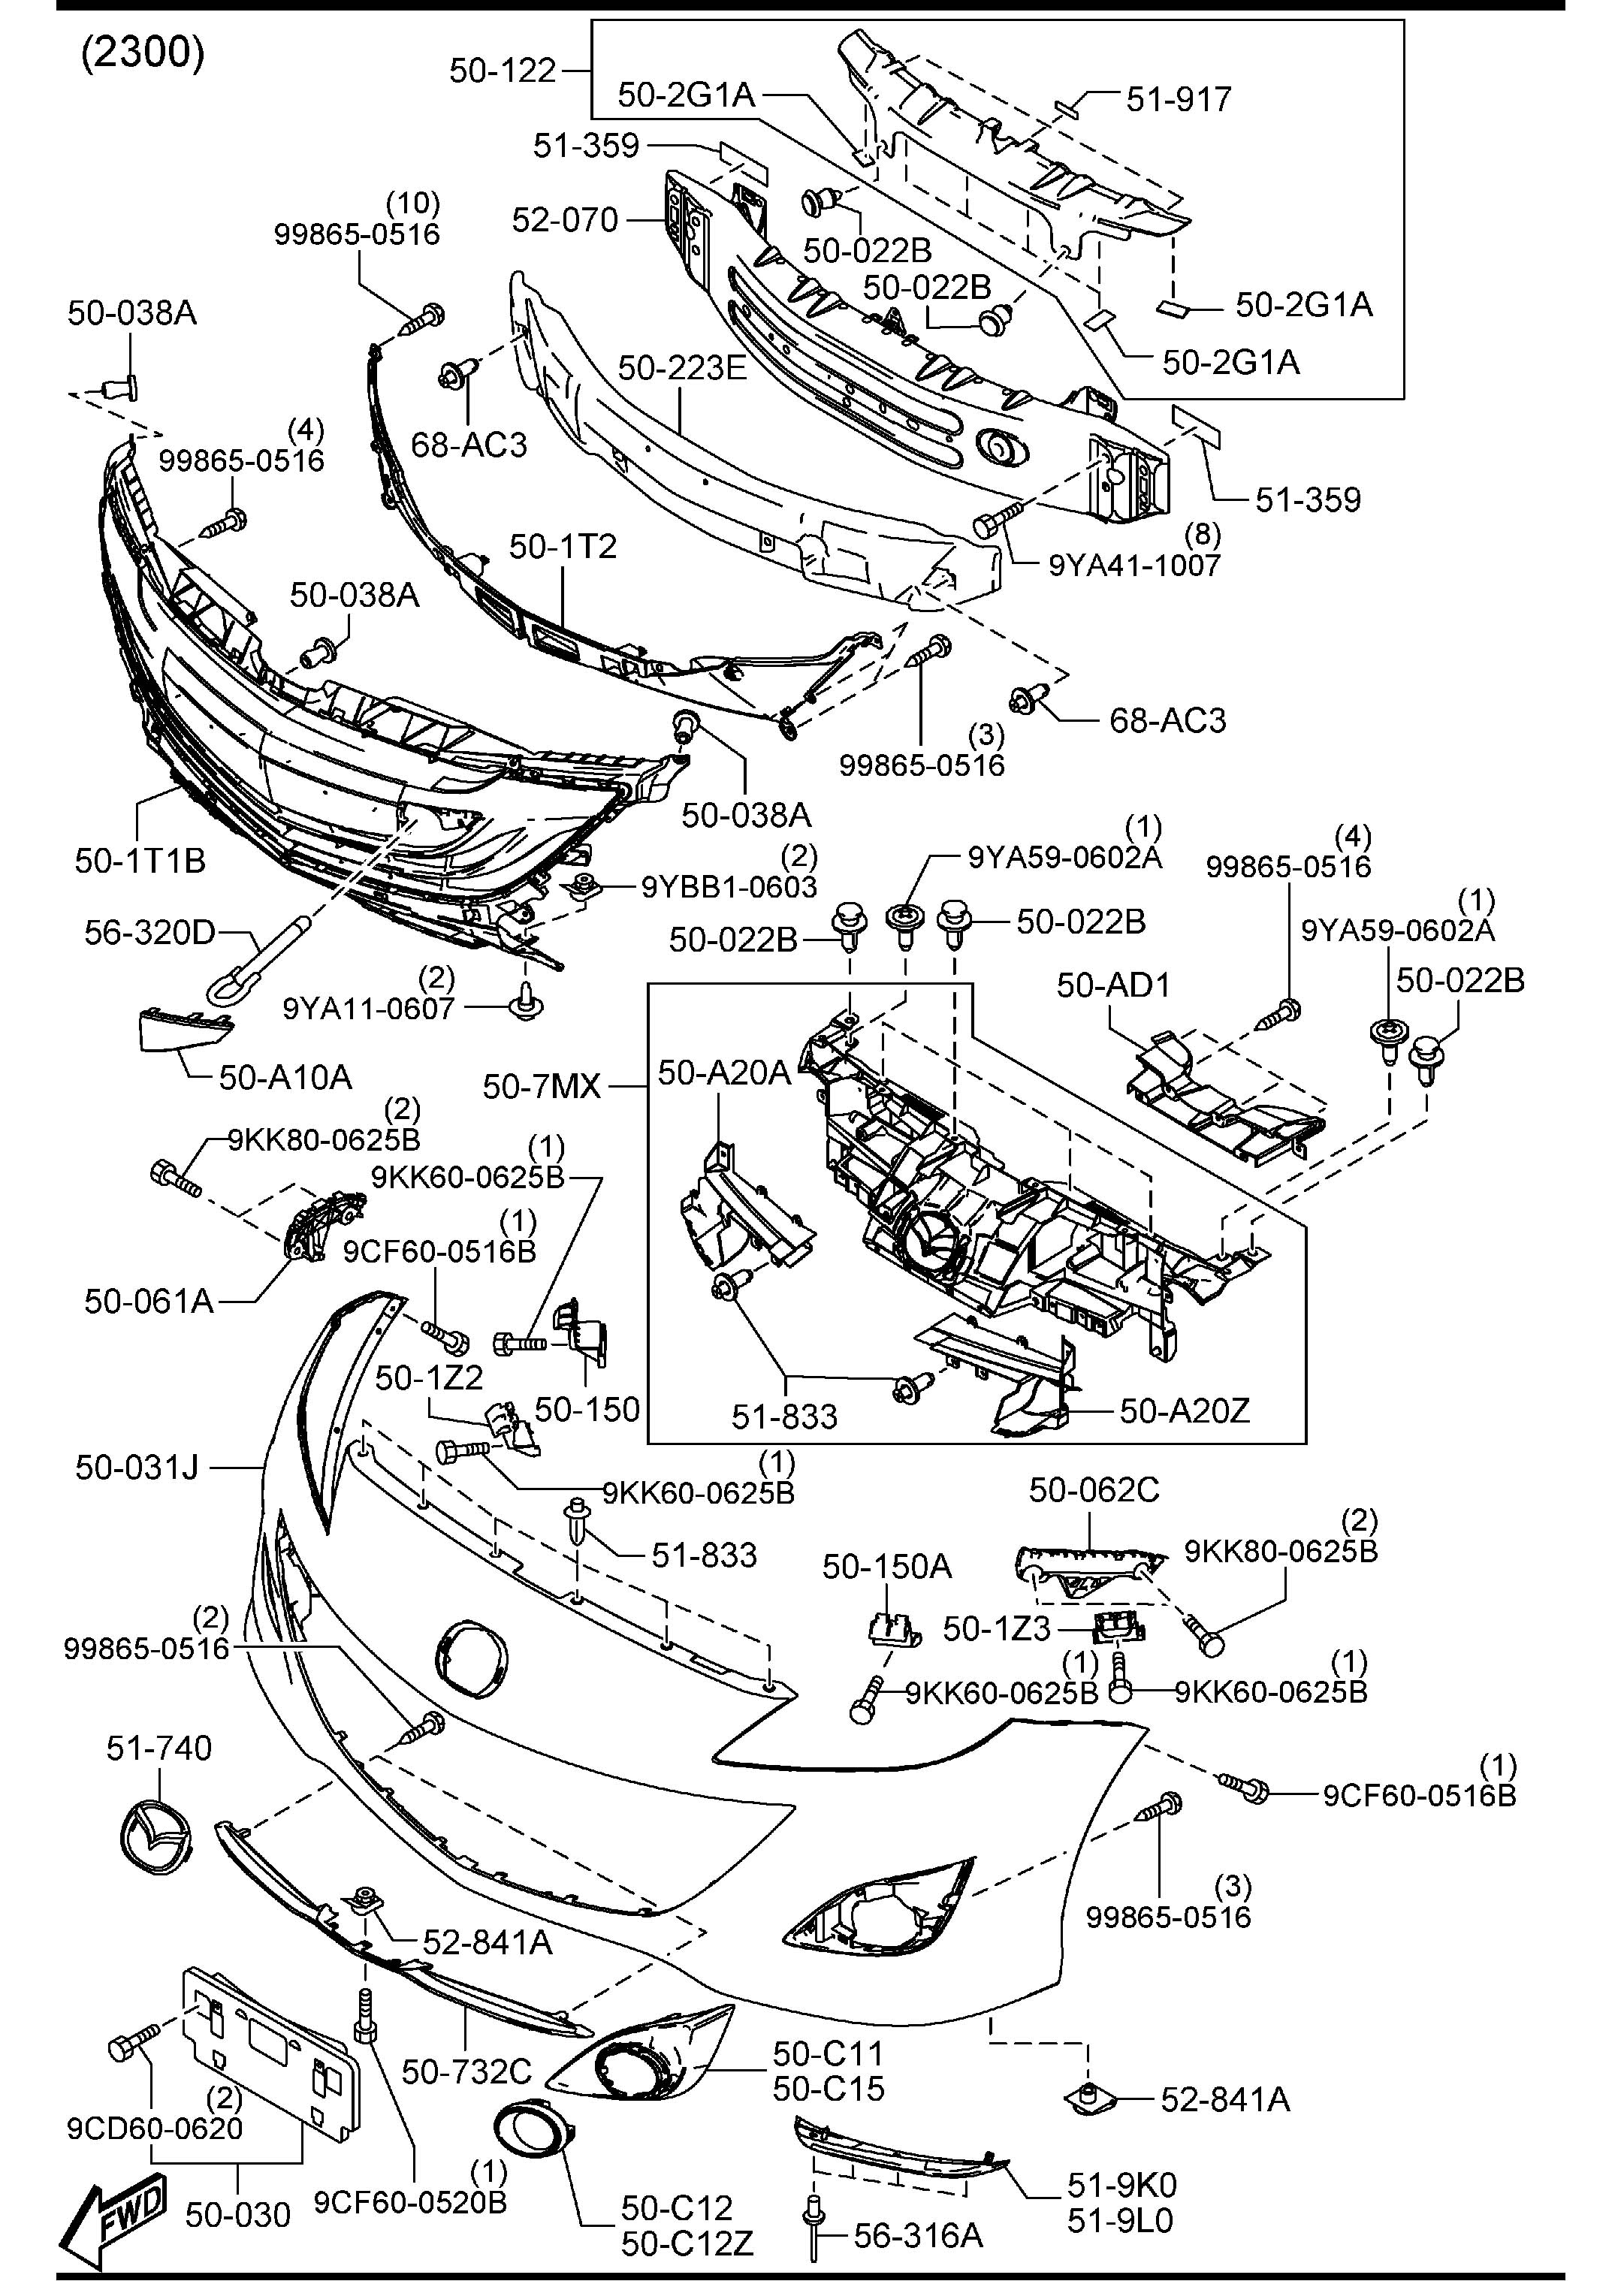 2009 Mazda 6 Parts Diagram • Wiring Diagram For Free